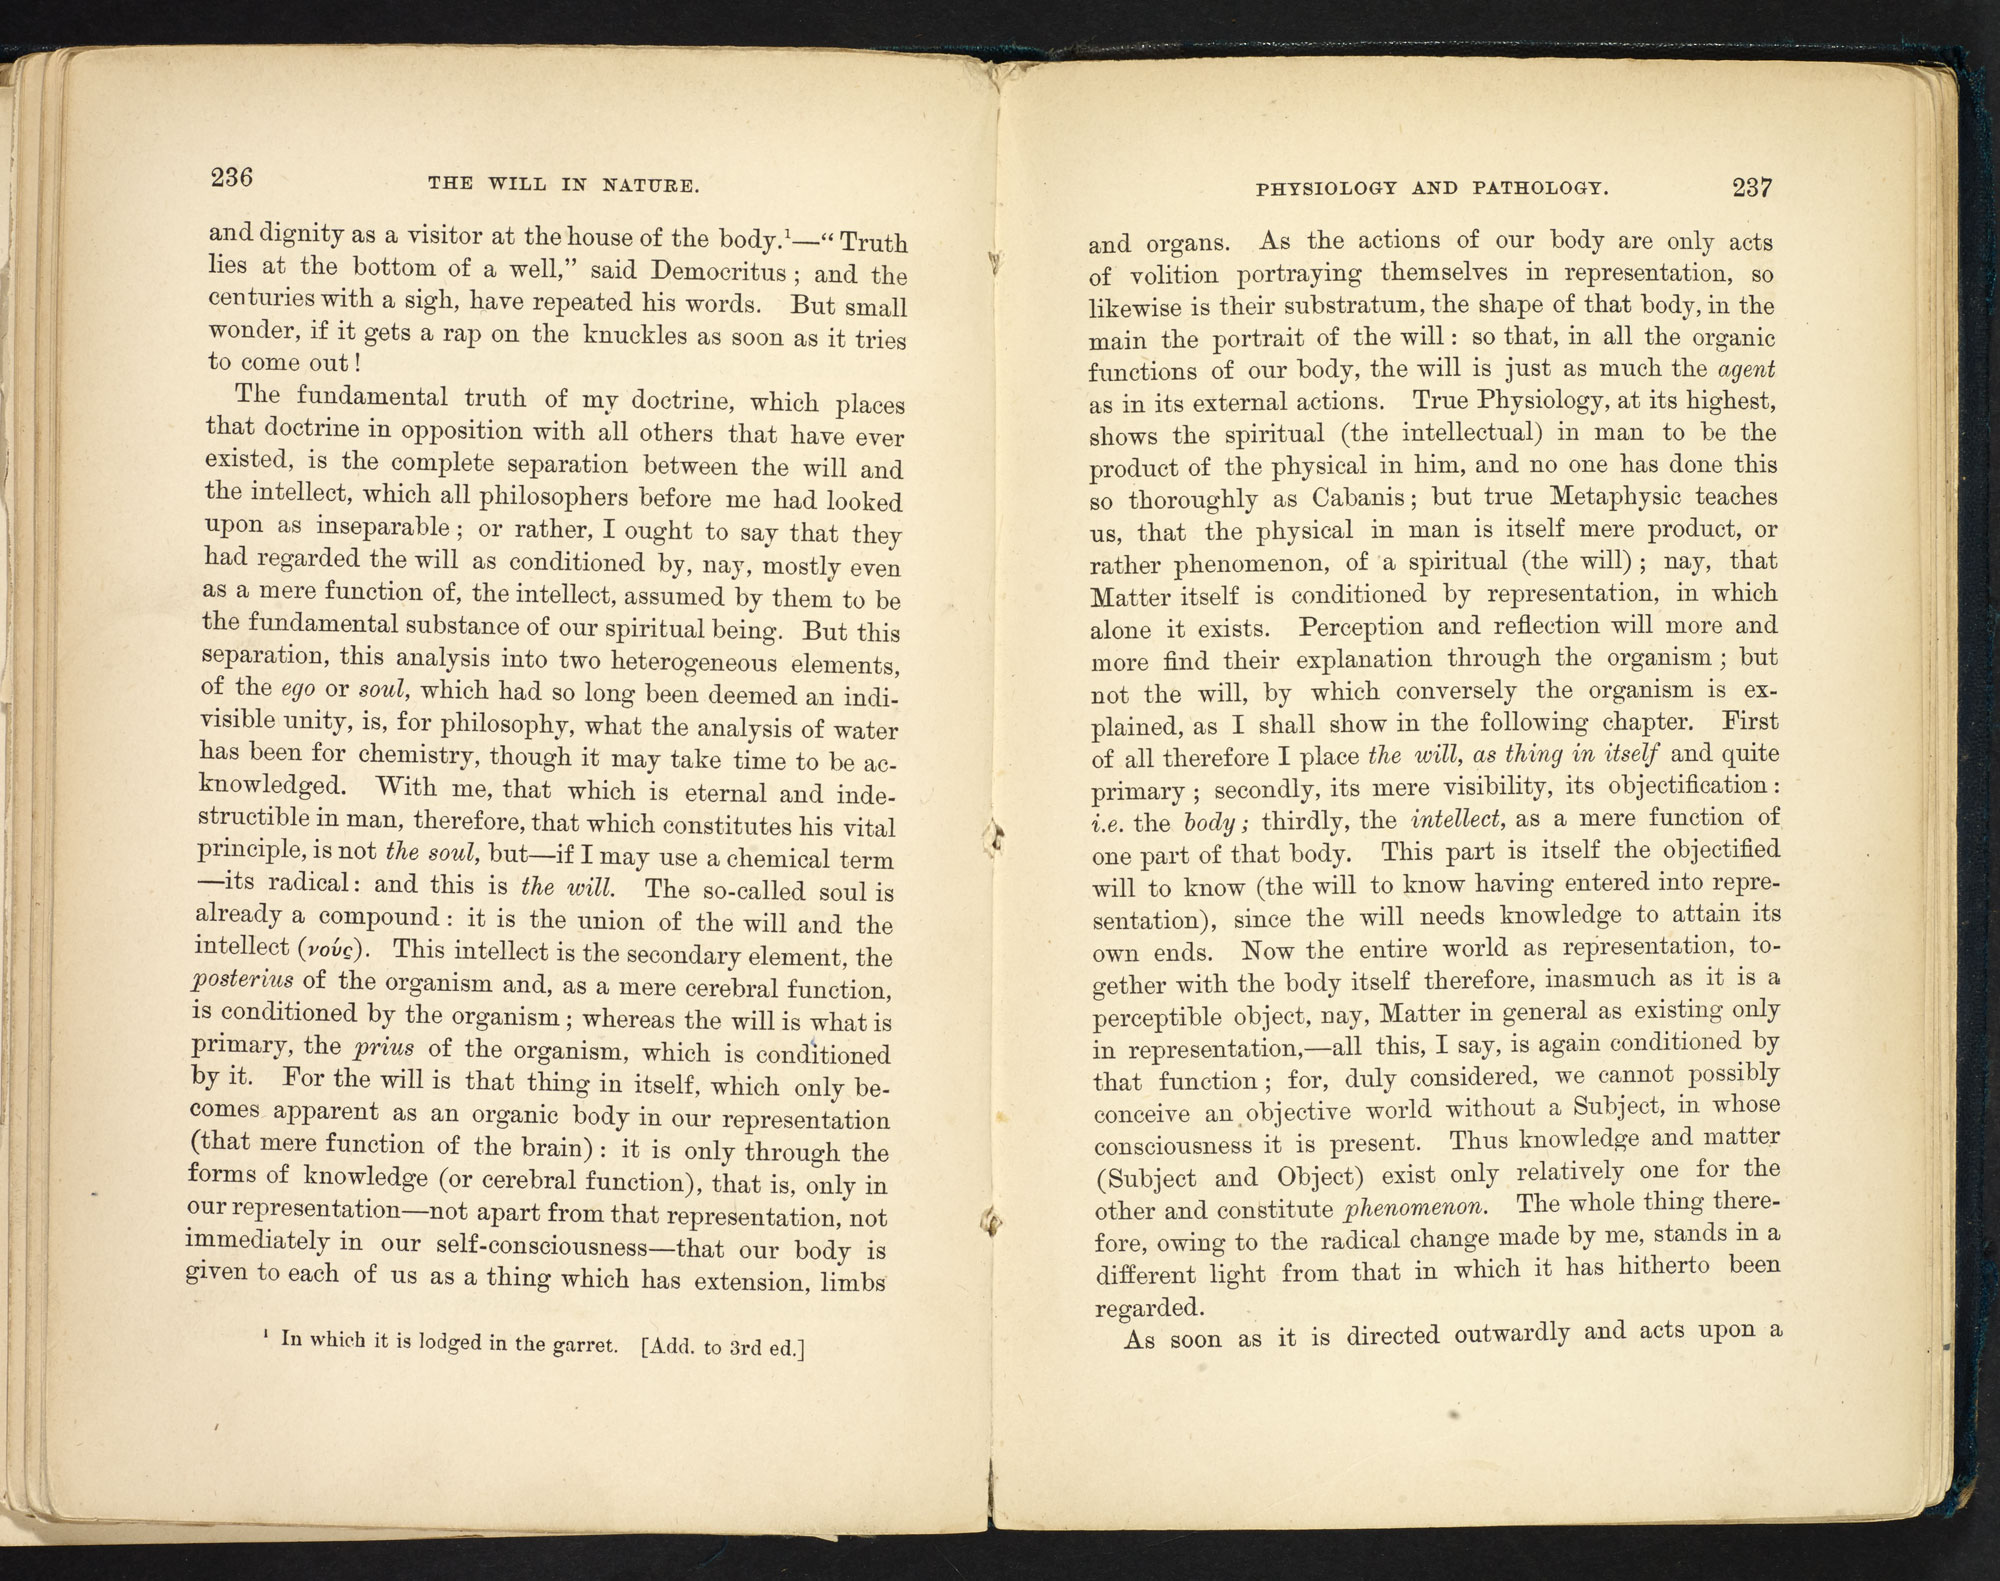 Essay by Schopenhauer about reason and will - The British Library